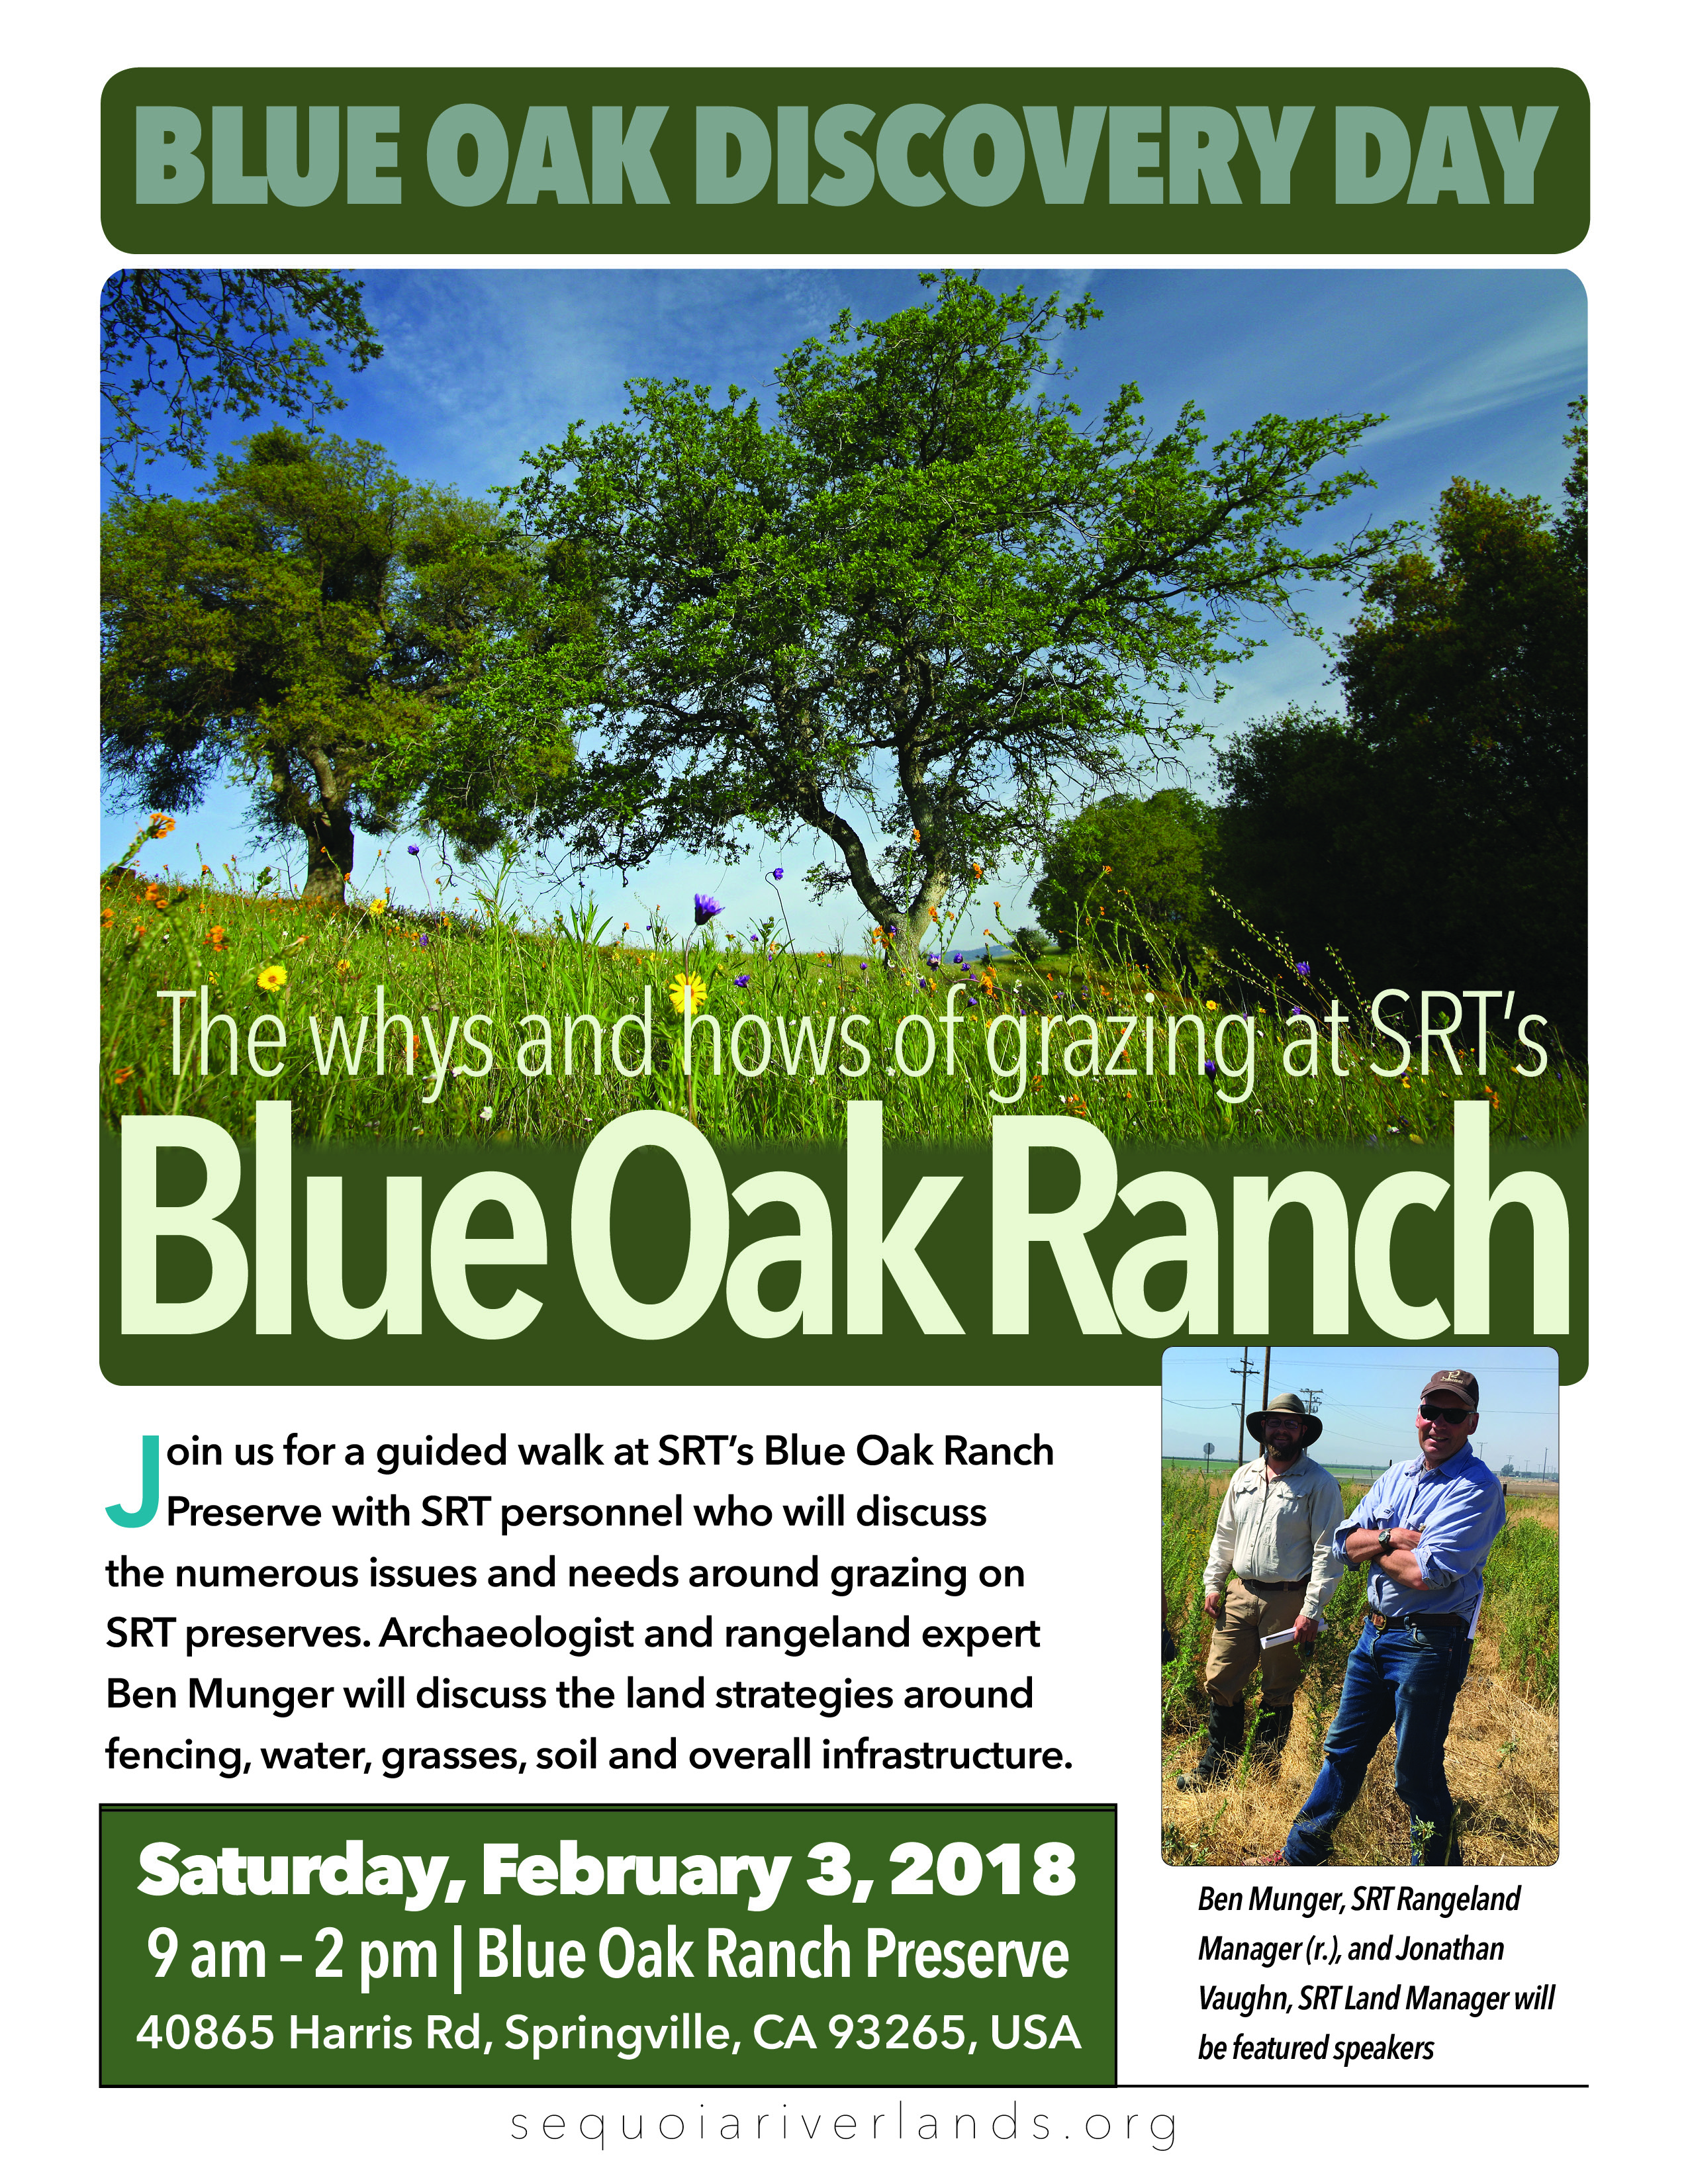 Blue Oak Discovery Day: The Whys and Hows of Grazing